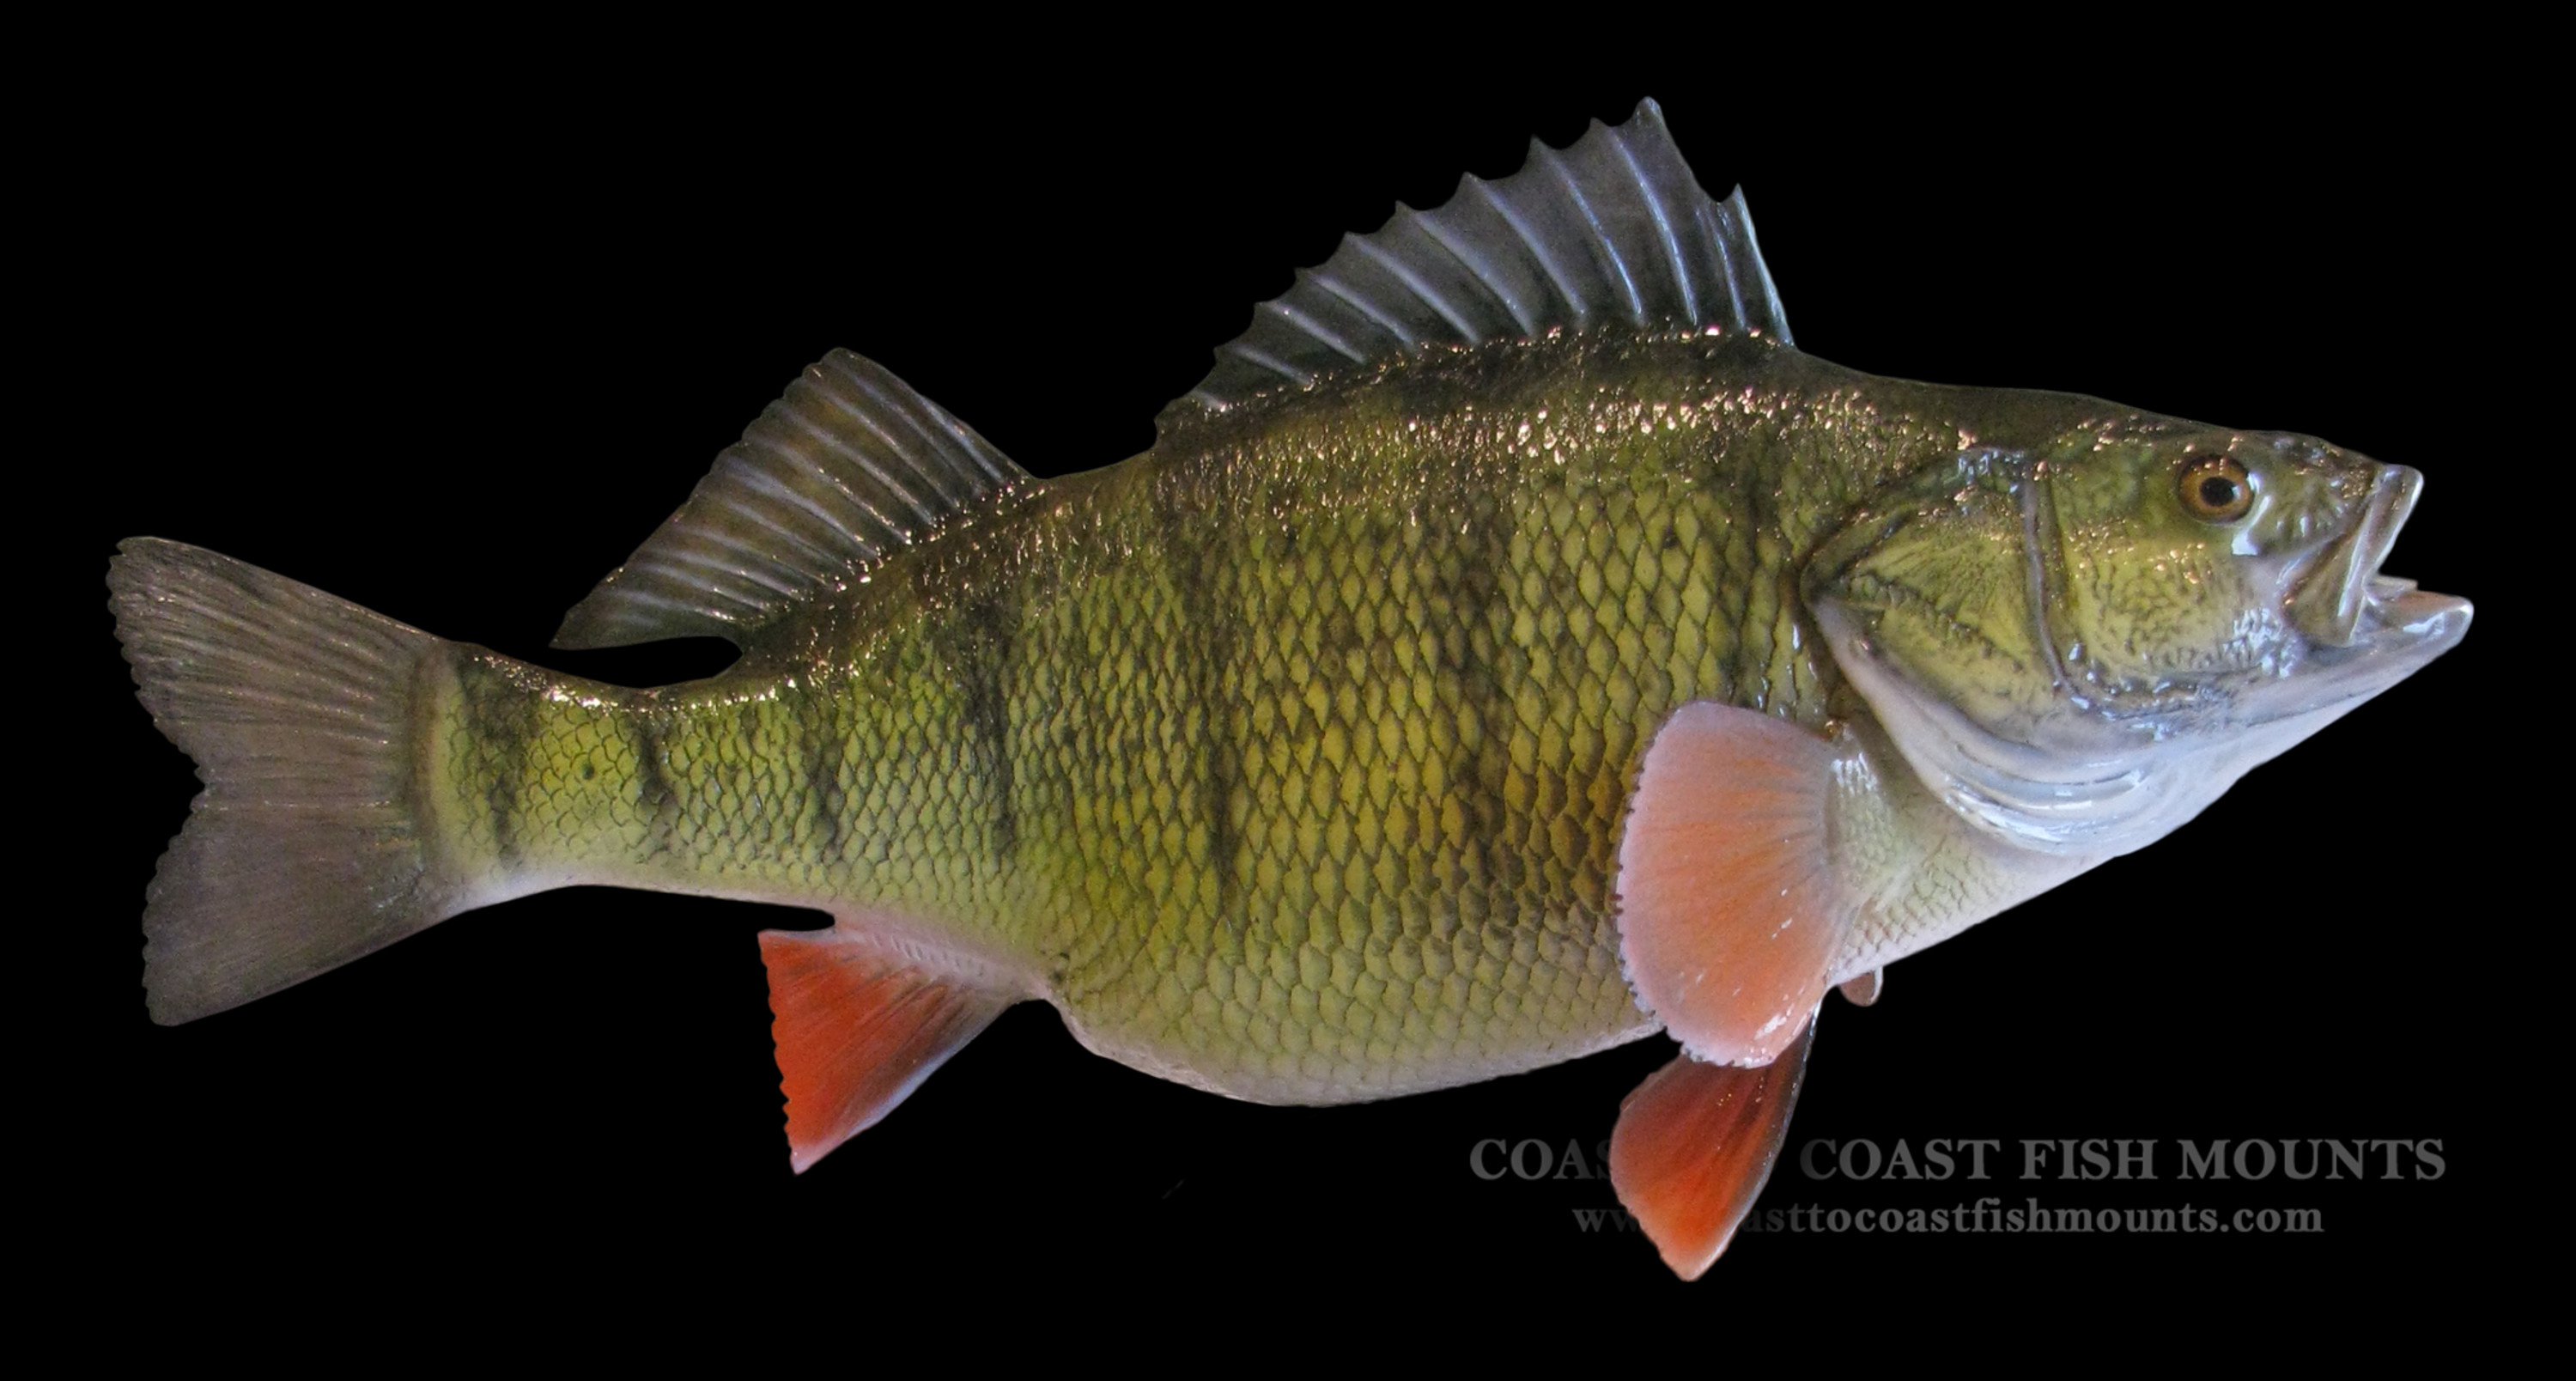 yellow perch fish mount and fish replicas coast to coast